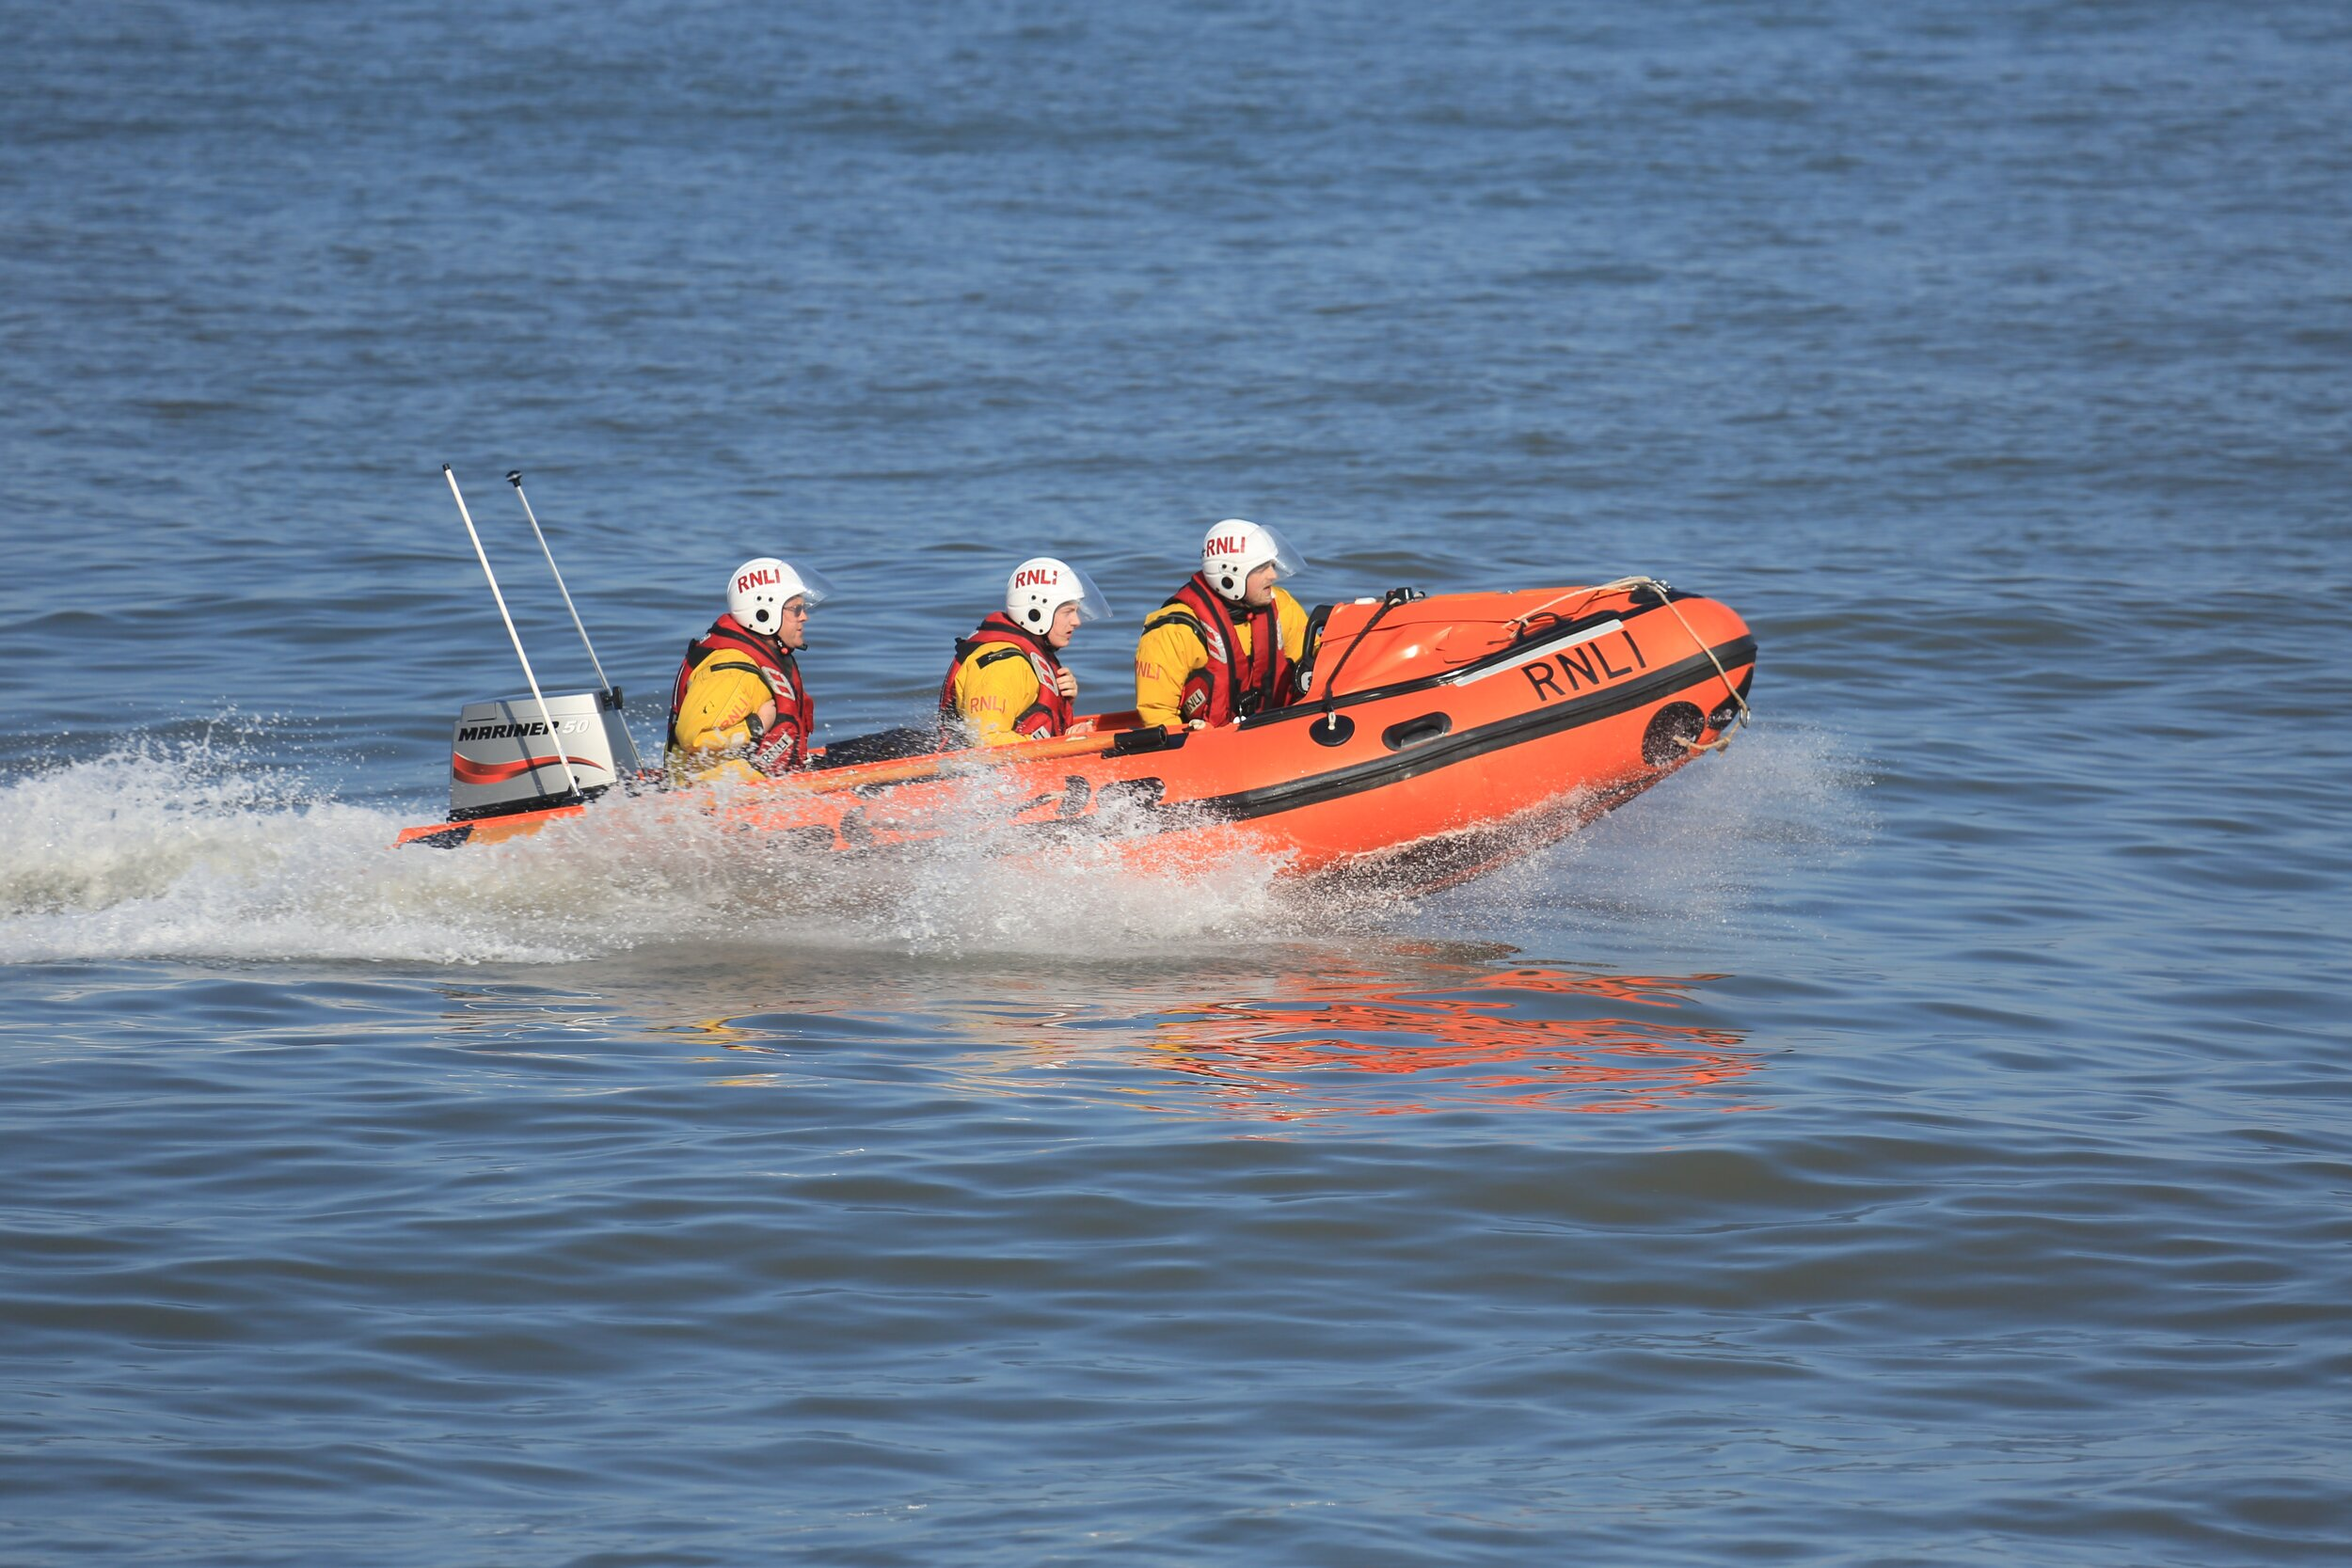 Helly Hansen's brand was a natural fit for the RNLI.